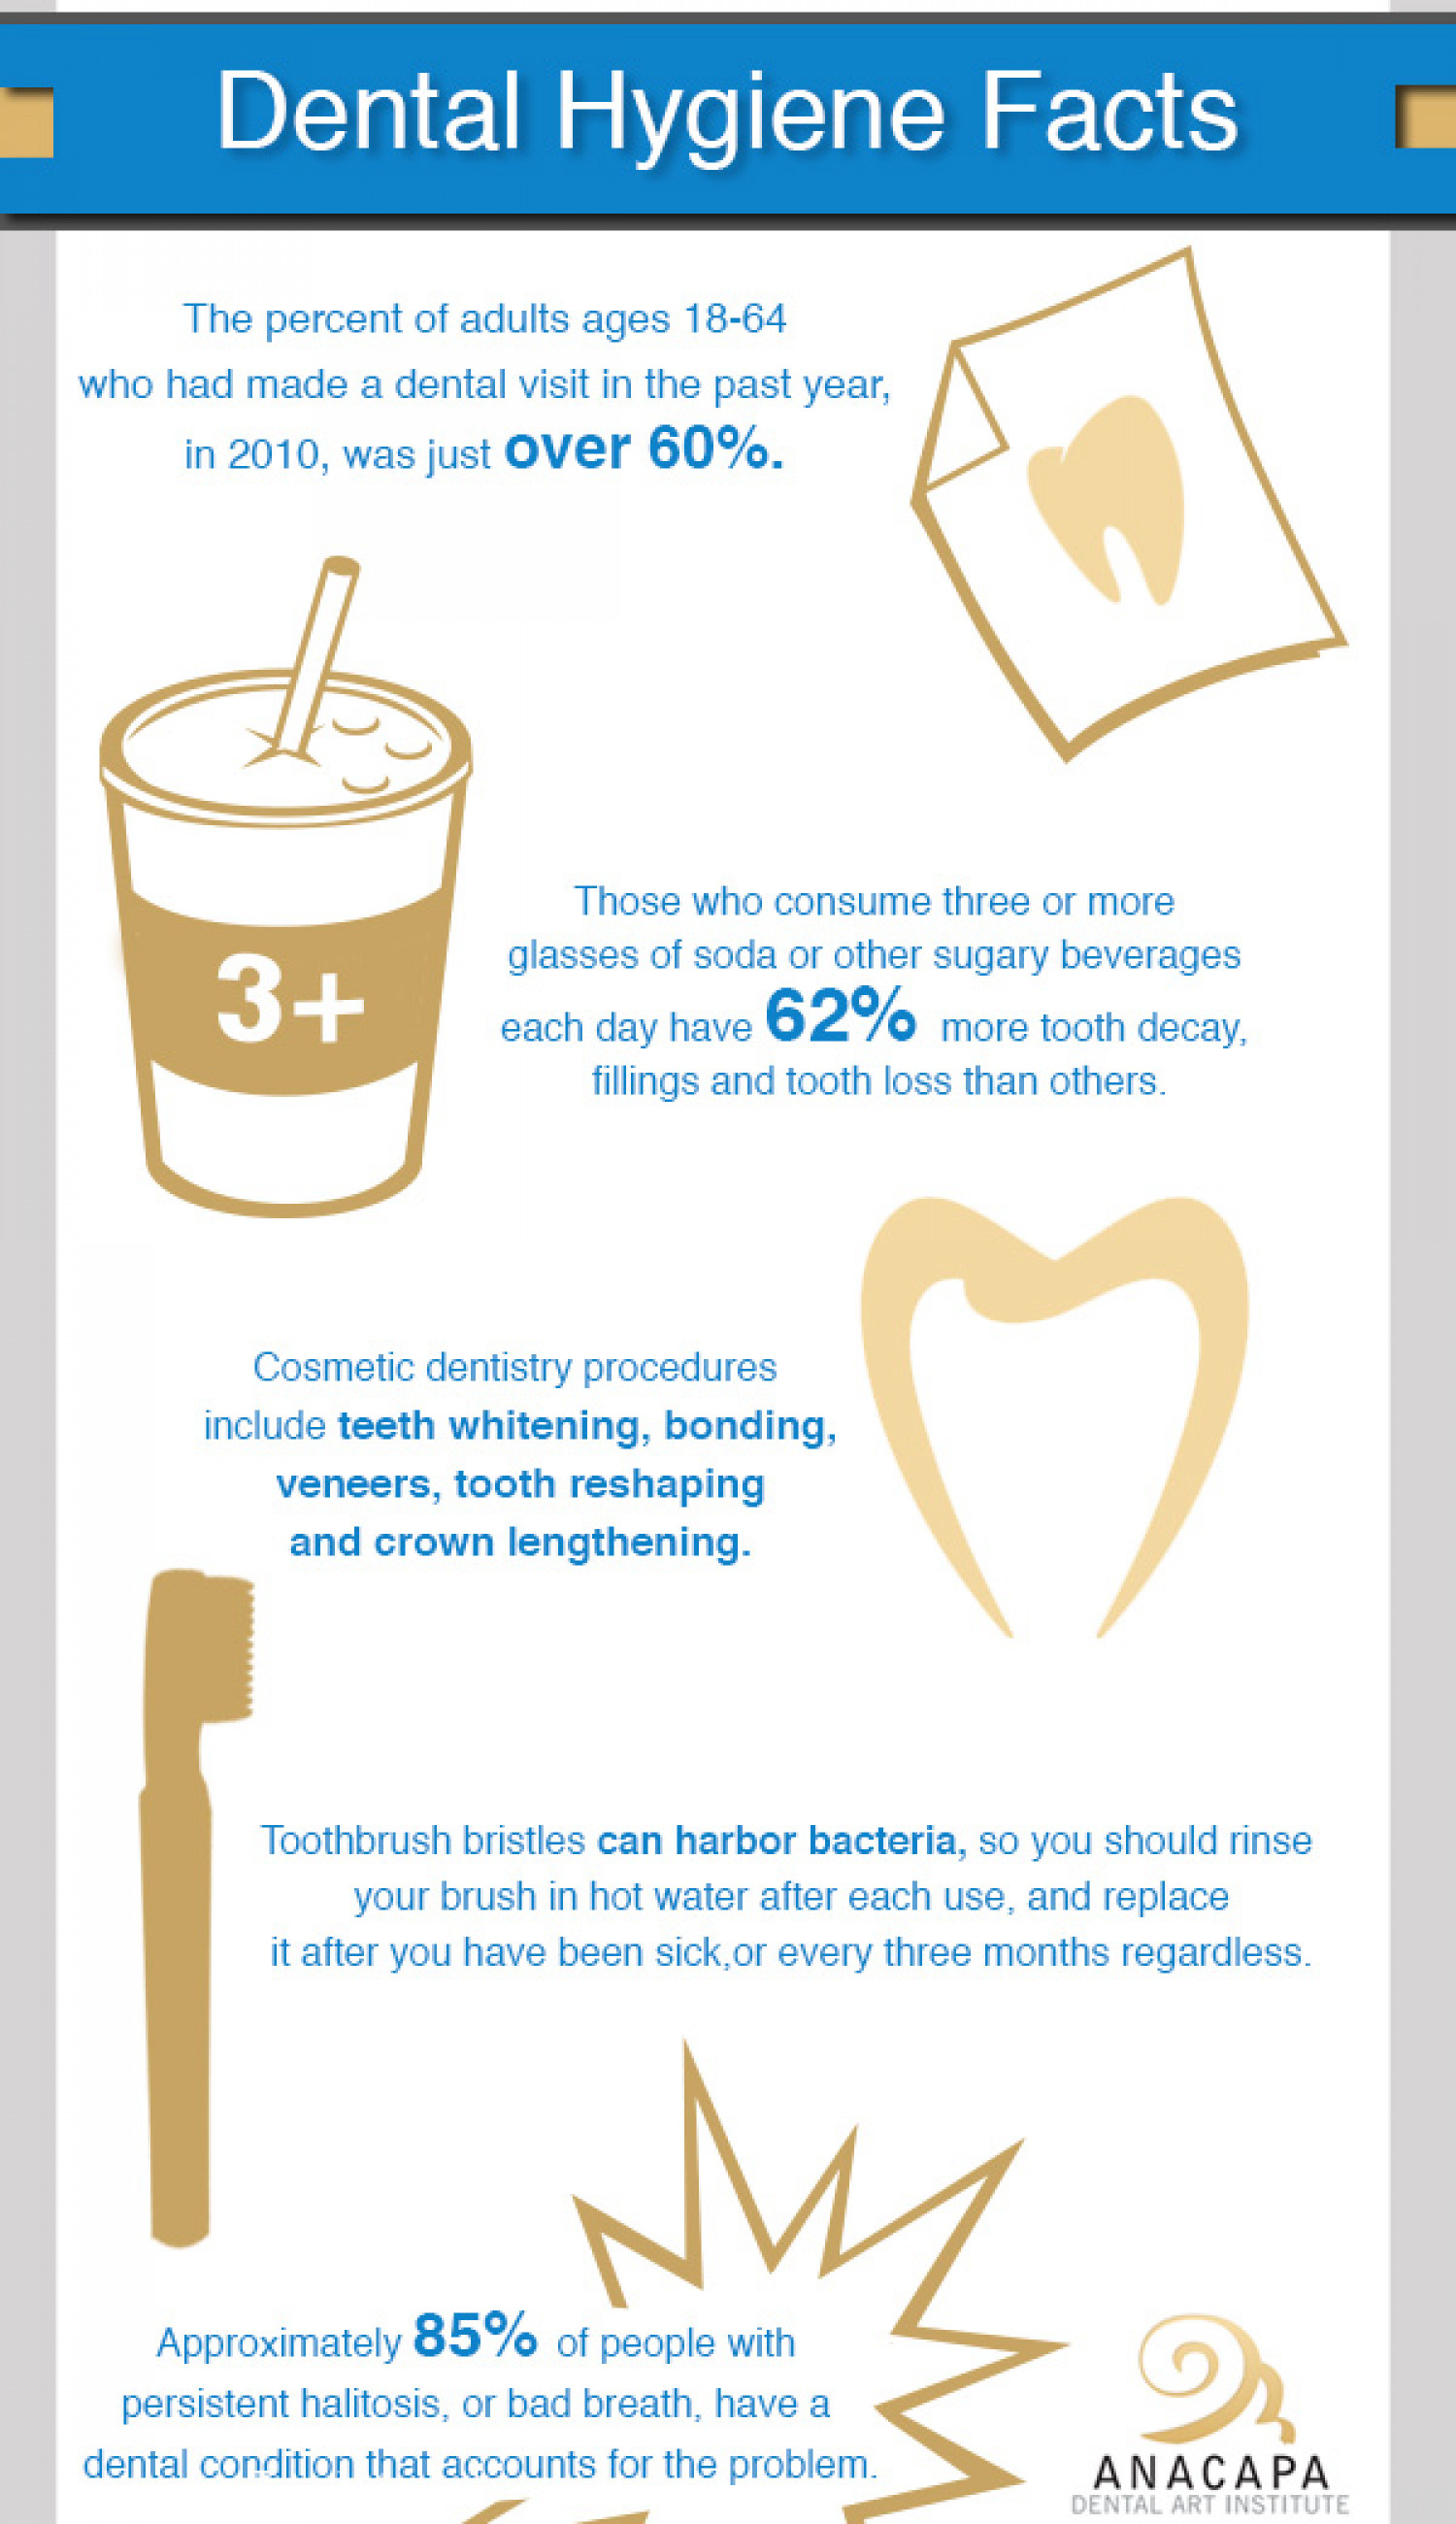 Dental Hygiene Facts Infographic